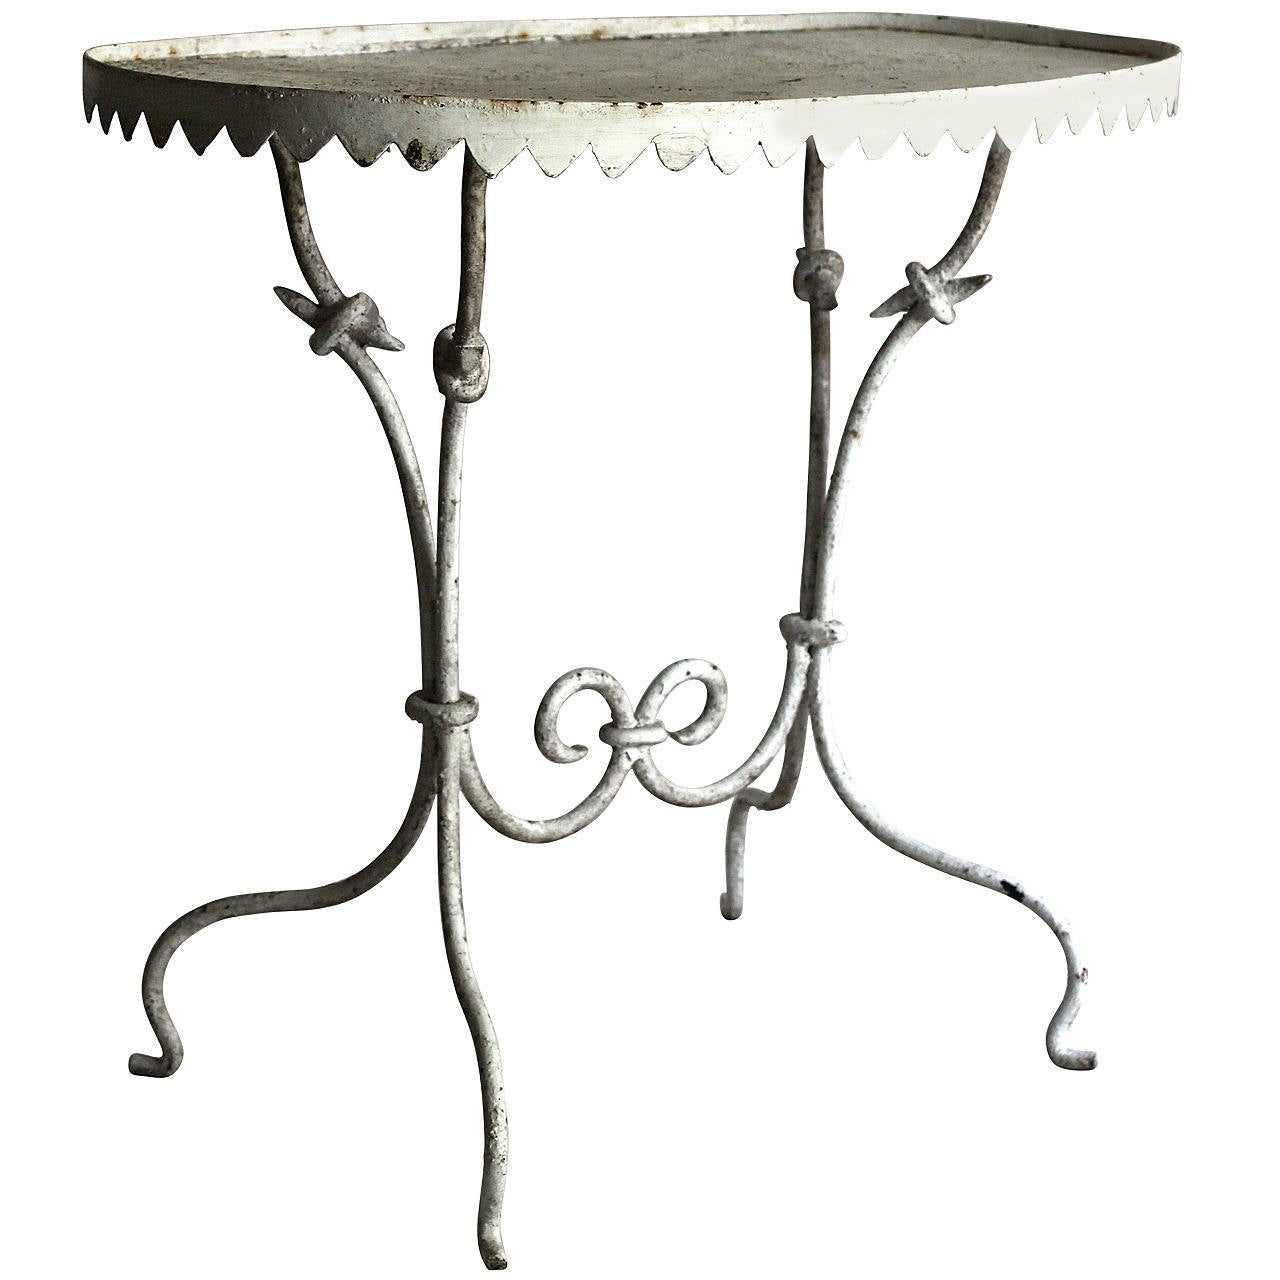 Wrought iron garden side table at 1stdibs for Wrought iron side table